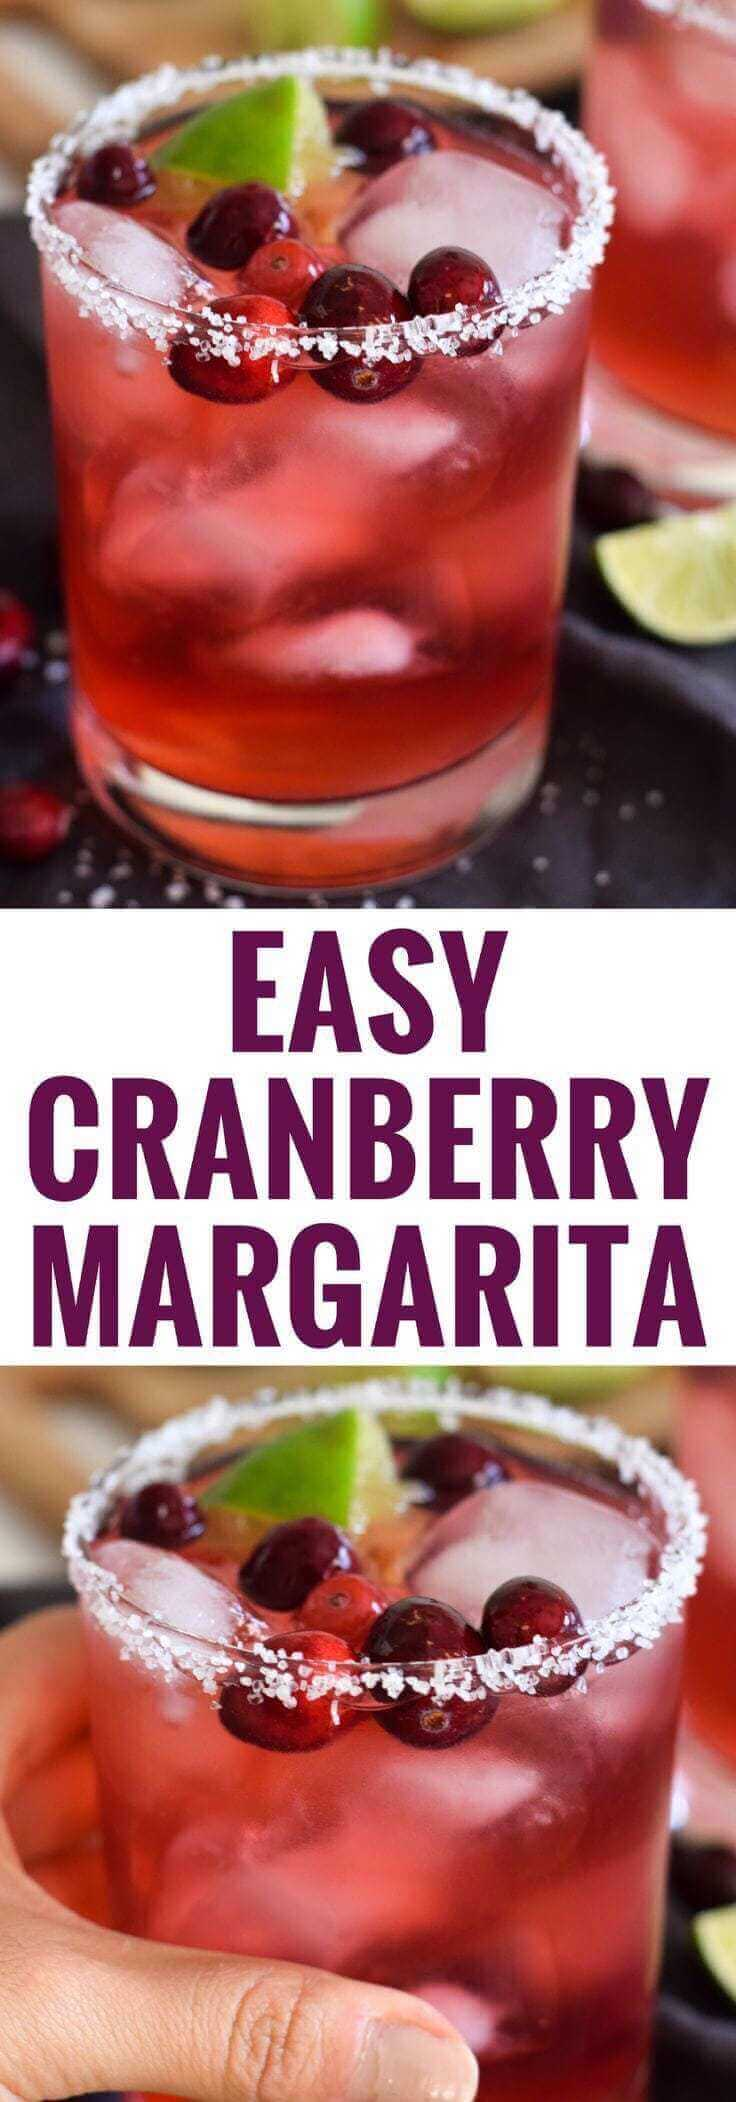 Easy Cranberry Margarita